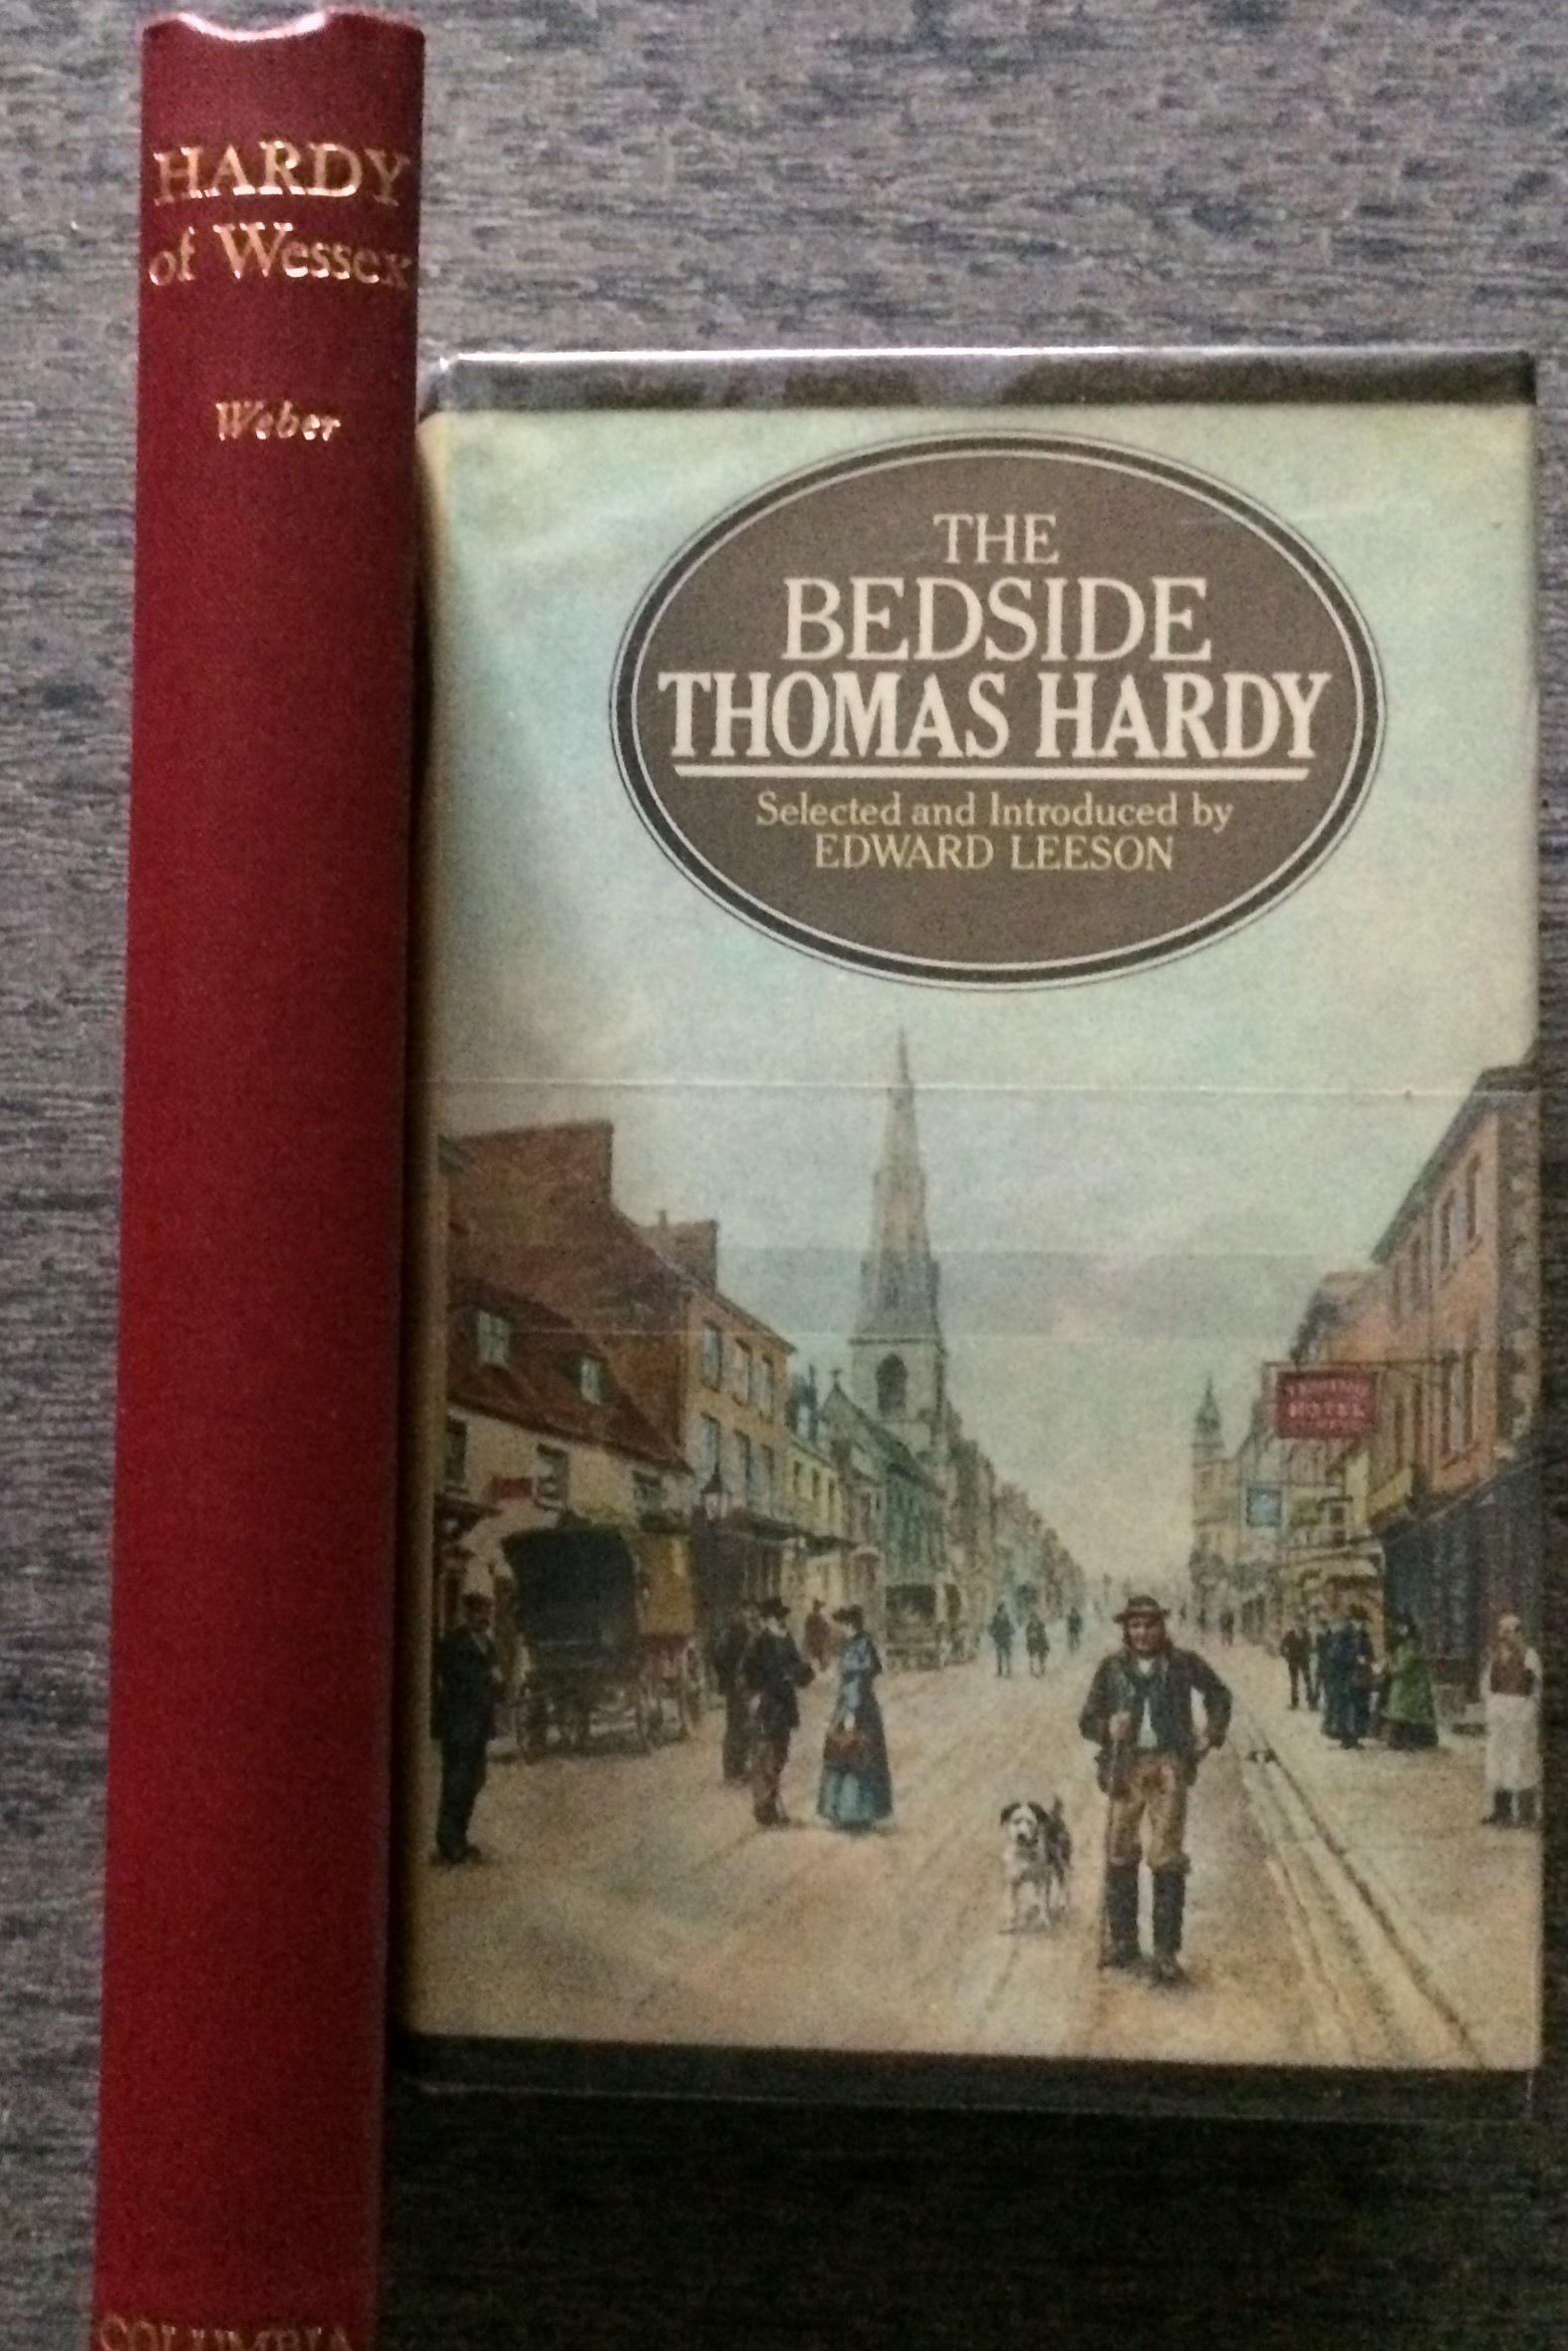 Image for [Two Titles] The Bedside Thomas Hardy, together with: Hardy of Wessex, His Life and Literary Career.